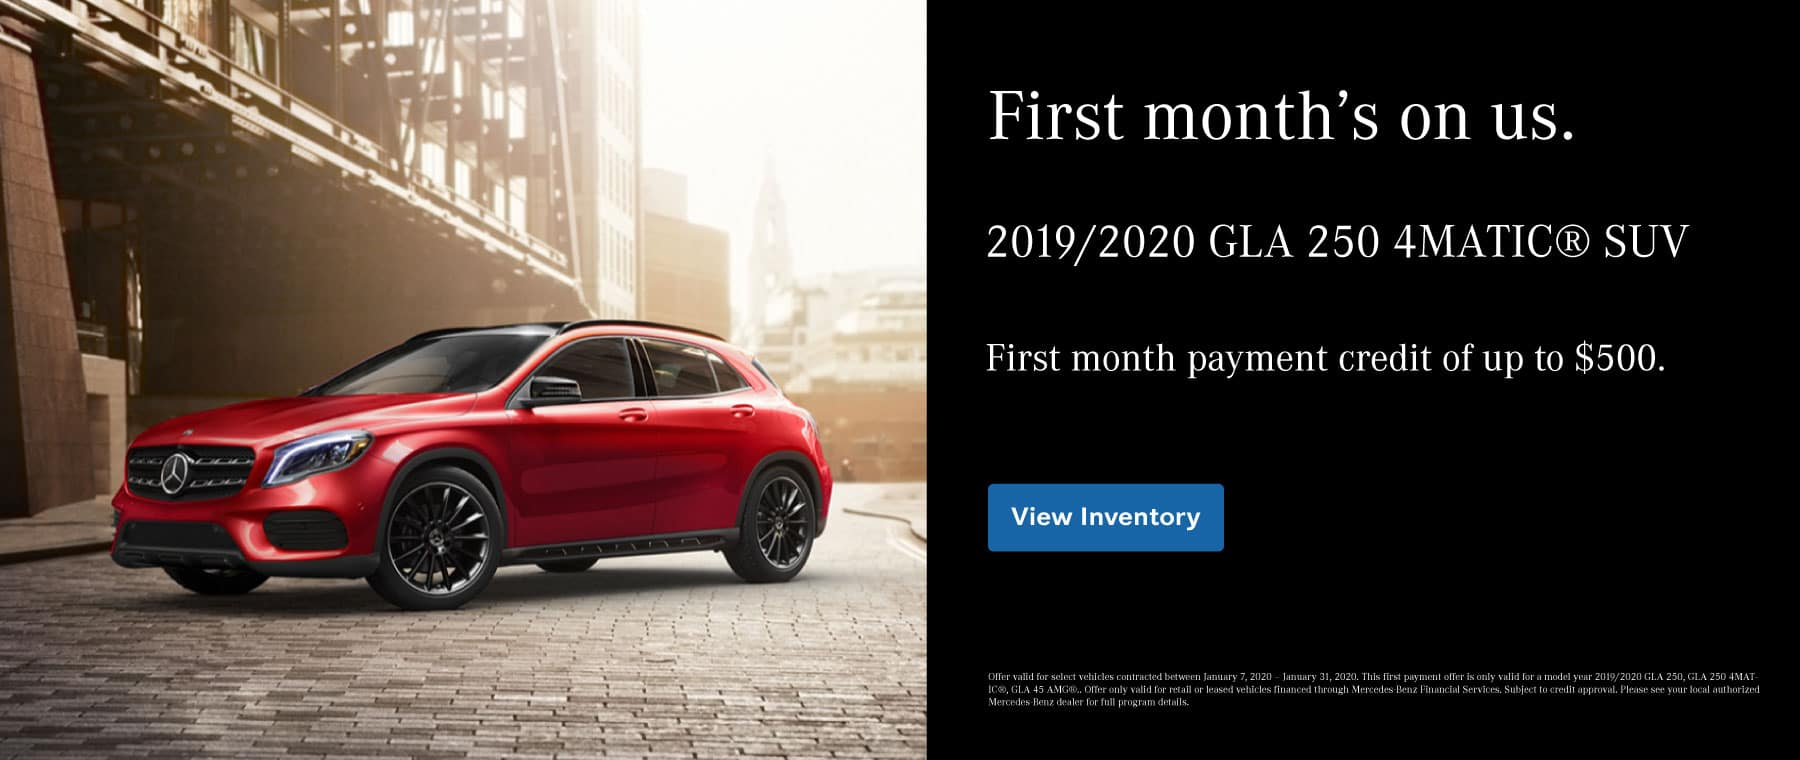 GLA Payment Credit